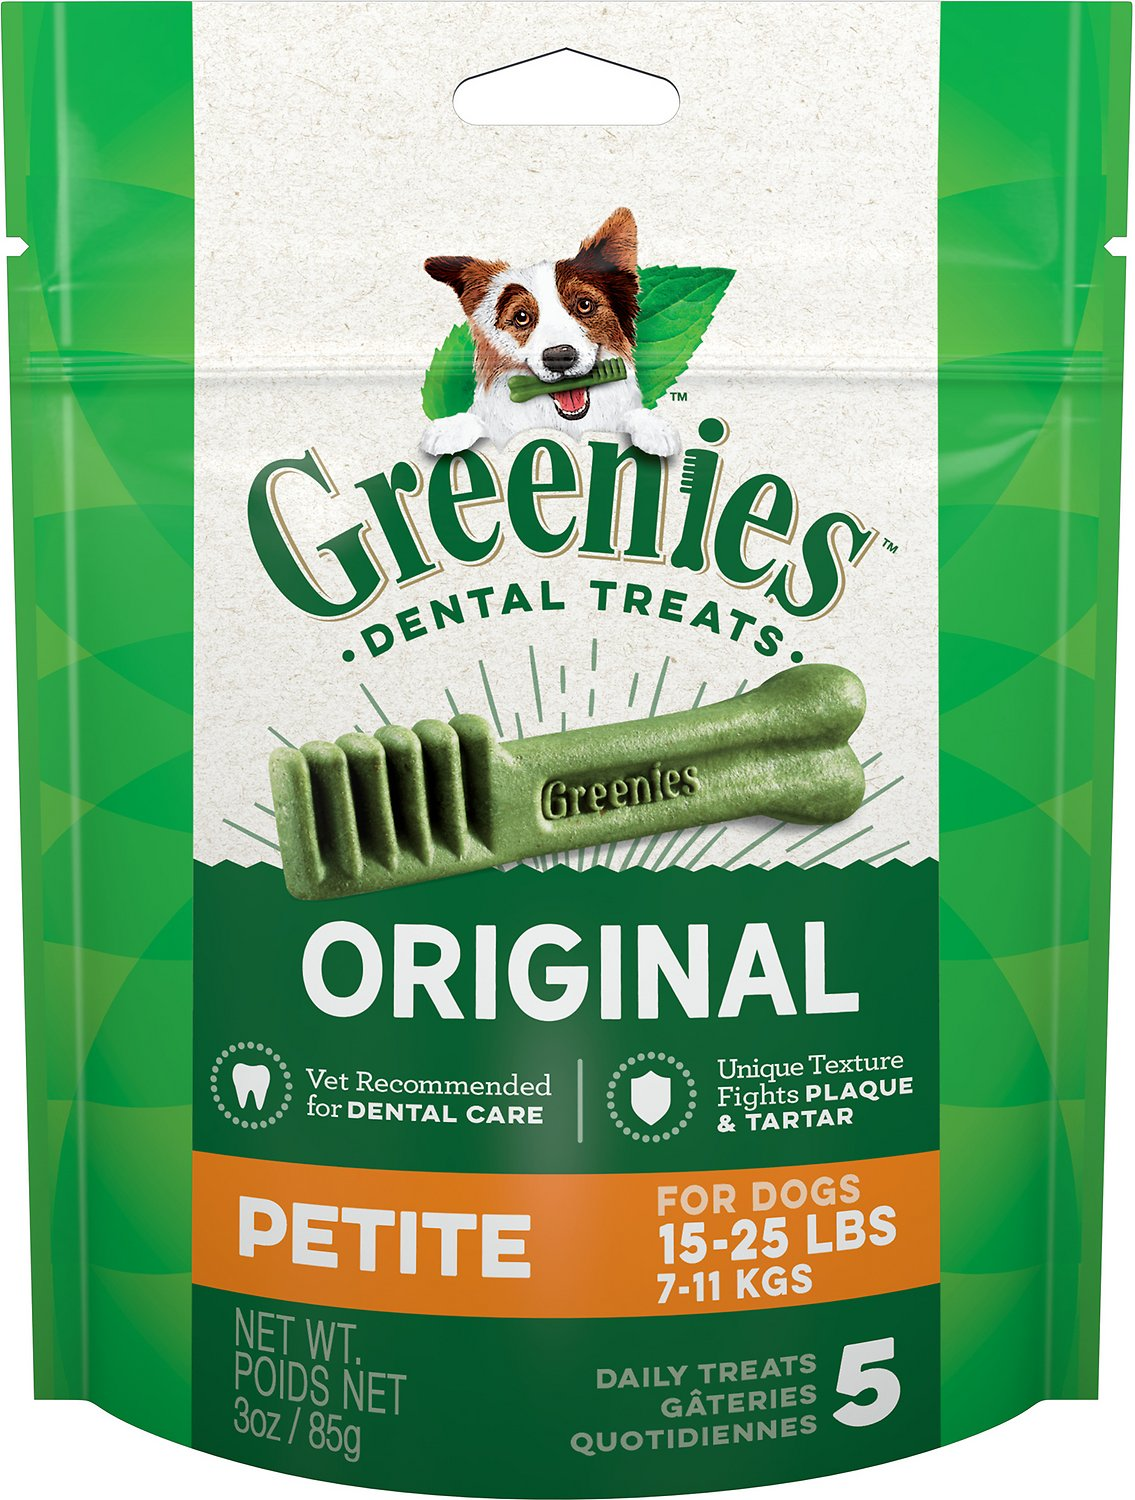 Greenies Original Petite Dental Dog Treats, 5-count